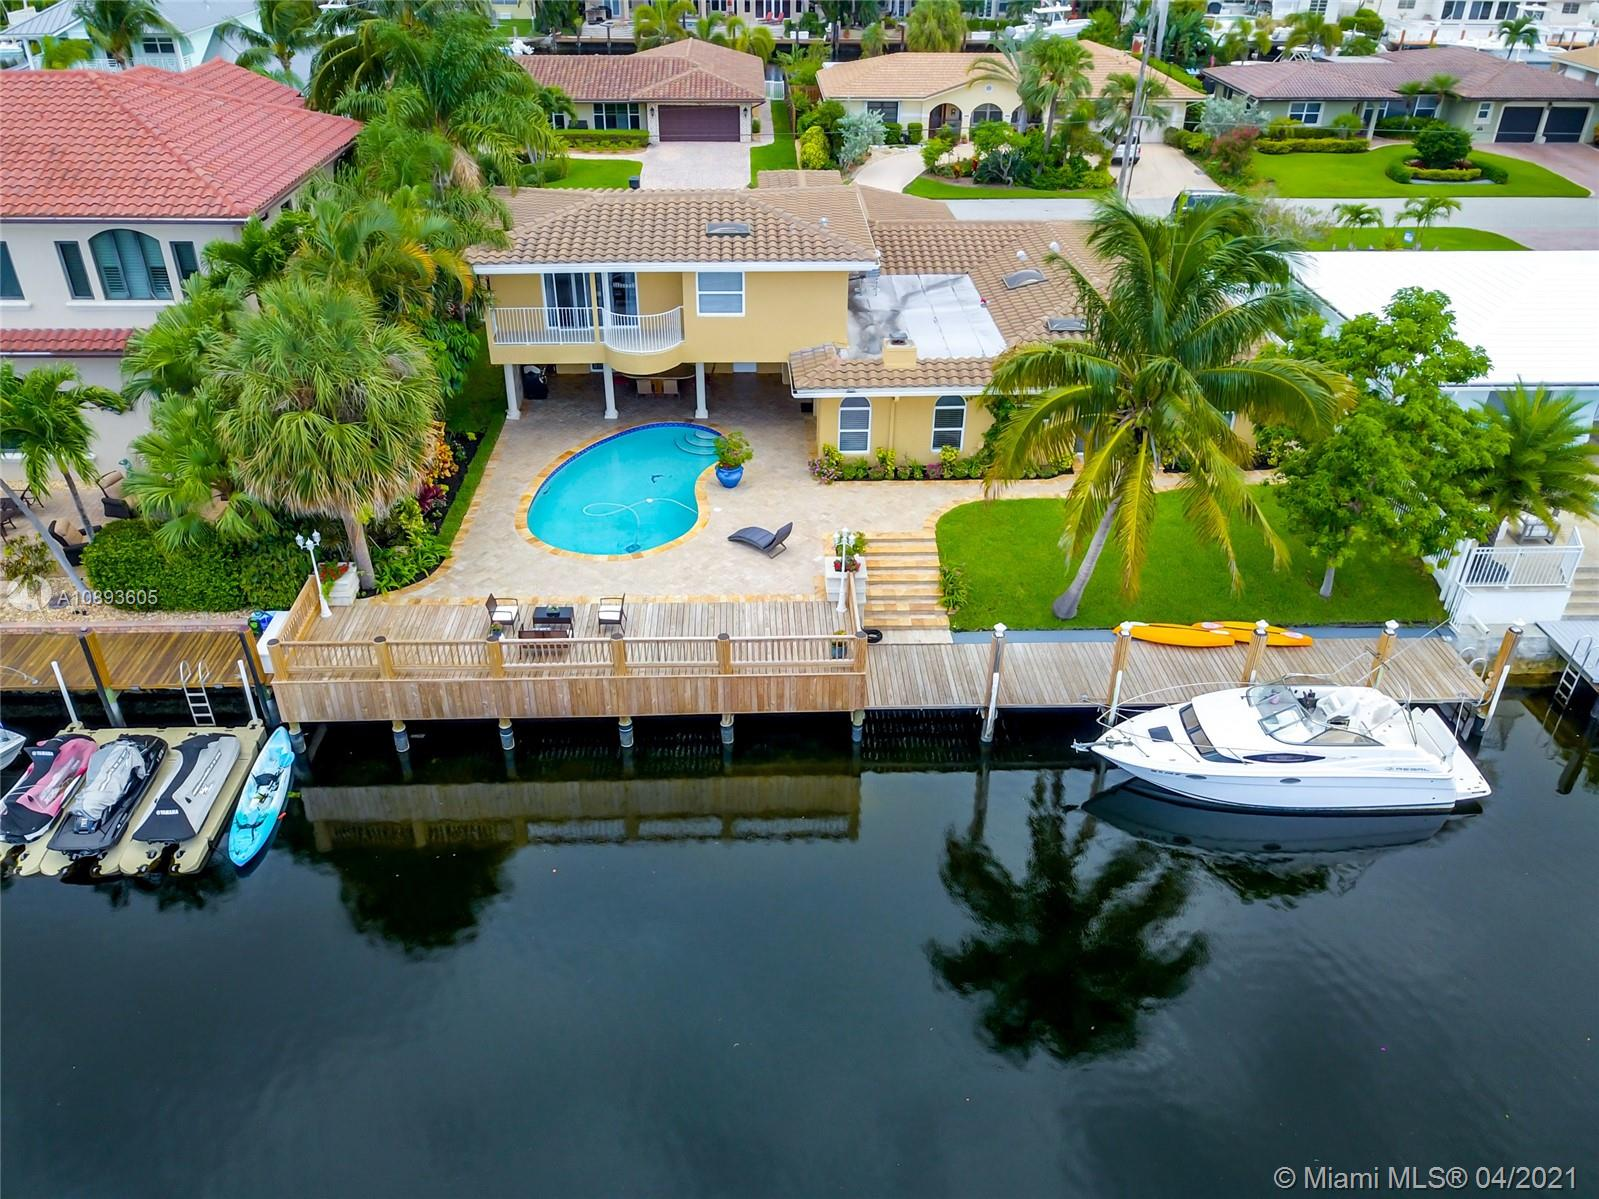 Remarkable home in desirable Venetian Isles section of Lighthouse Point that features 90 ft of waterfront, private dock with power & water, no bridges to ICW and within minutes to Hillsboro Inlet and the ocean. This gorgeous 4-bedroom, 4-bathroom home is filled with natural light and features renovated kitchen and bathrooms, Spanish marble downstairs & hardwood floors upstairs, a huge Master suite on the 2nd floor with balcony facing East where you can watch the sun rising over the waterway every morning. The spacious outdoor features a lanai overlooking the beautiful pool, the patio/deck and the waterfront canal making this home an amazing place for family living and entertainment. Hurricane impact windows throughout. Roof installed in 2015, new A/C and brand new deck.